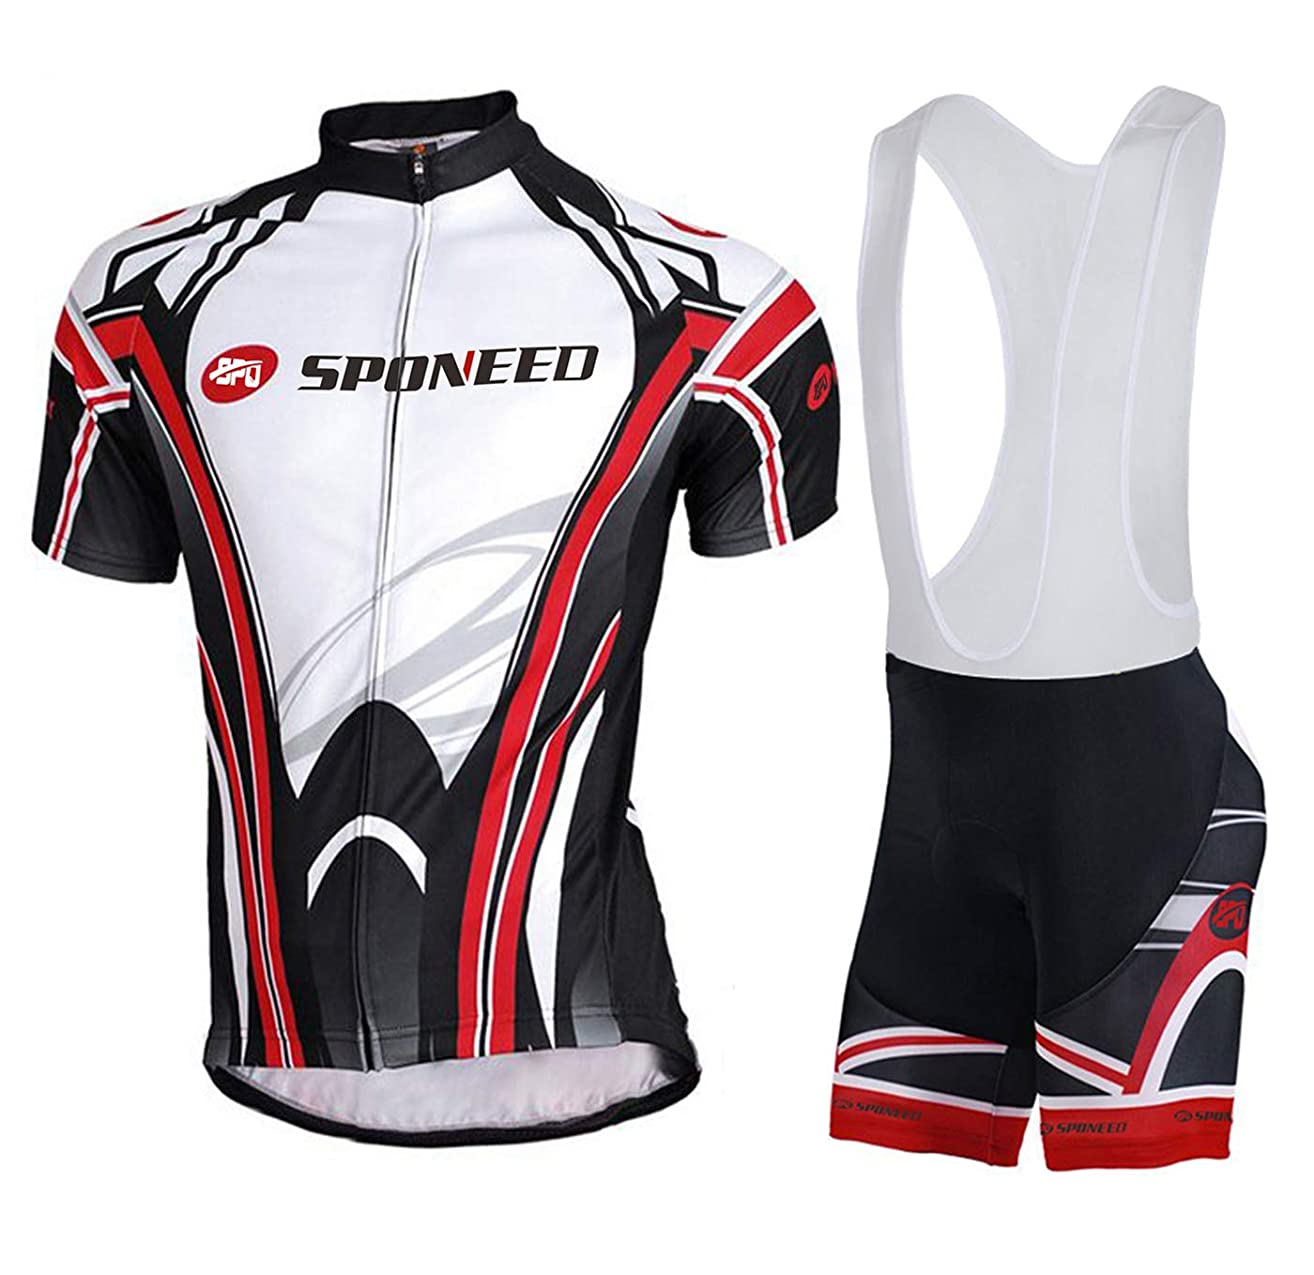 sponeed Men's Shorts Bib and Jersey Cycling Kits Set Road Bike Outdoor Riding Sportswear